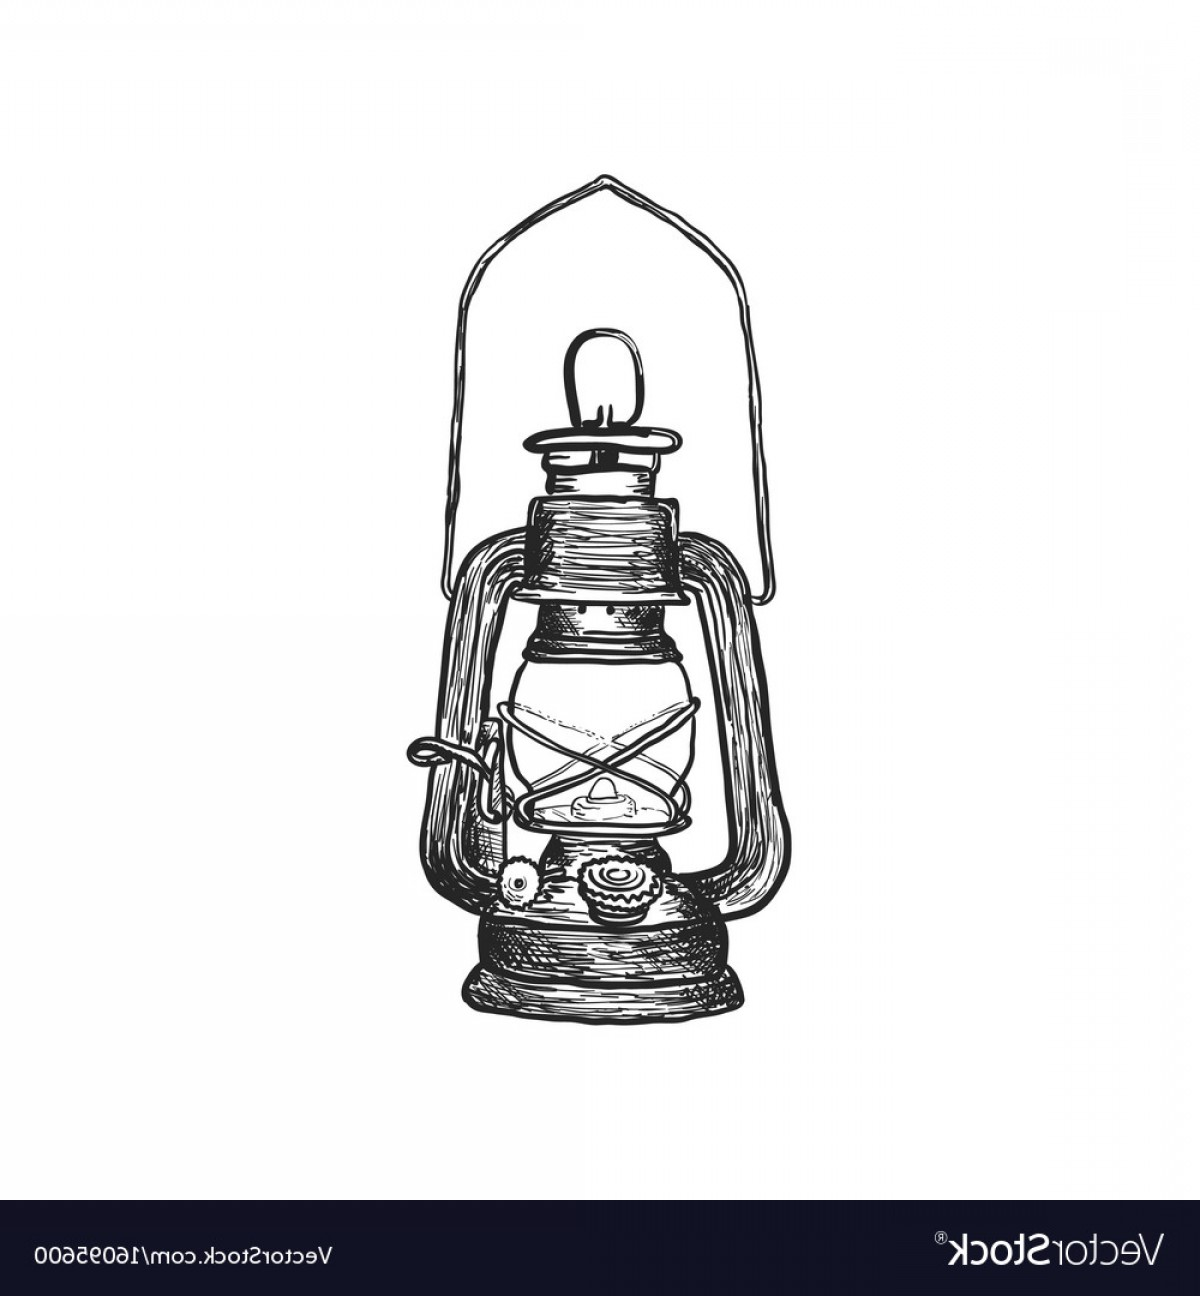 Boba Fett Vector Black And White: Oil Lamp Vintage Hand Drawn Lanterns Vector